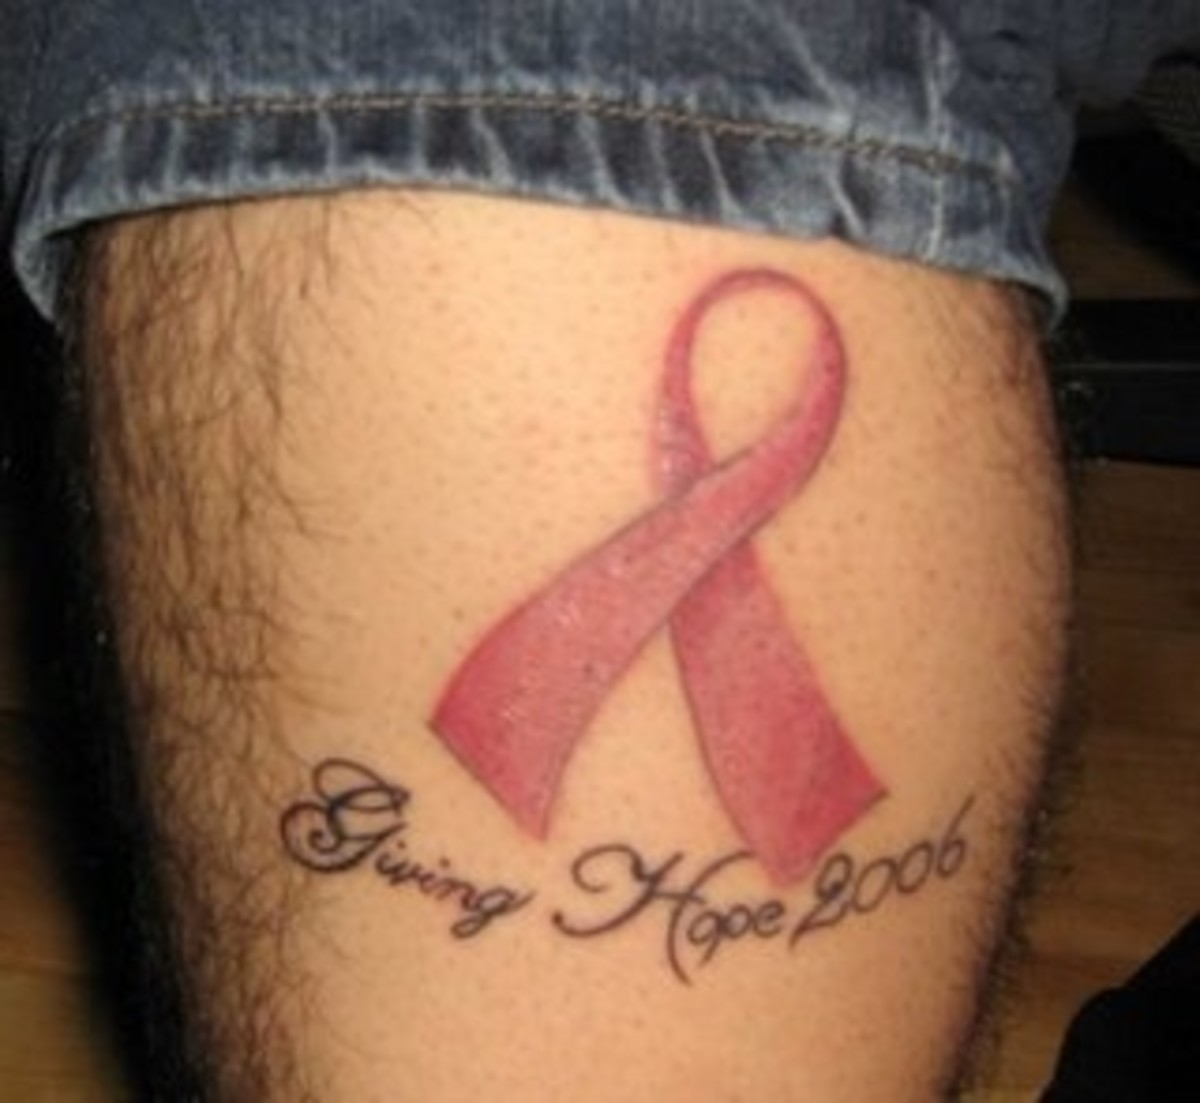 My husband John had this tattoo done by Brent in Dunstable to celebrate breast cancer ribbon tattoos. There have been so many boons to the craft in